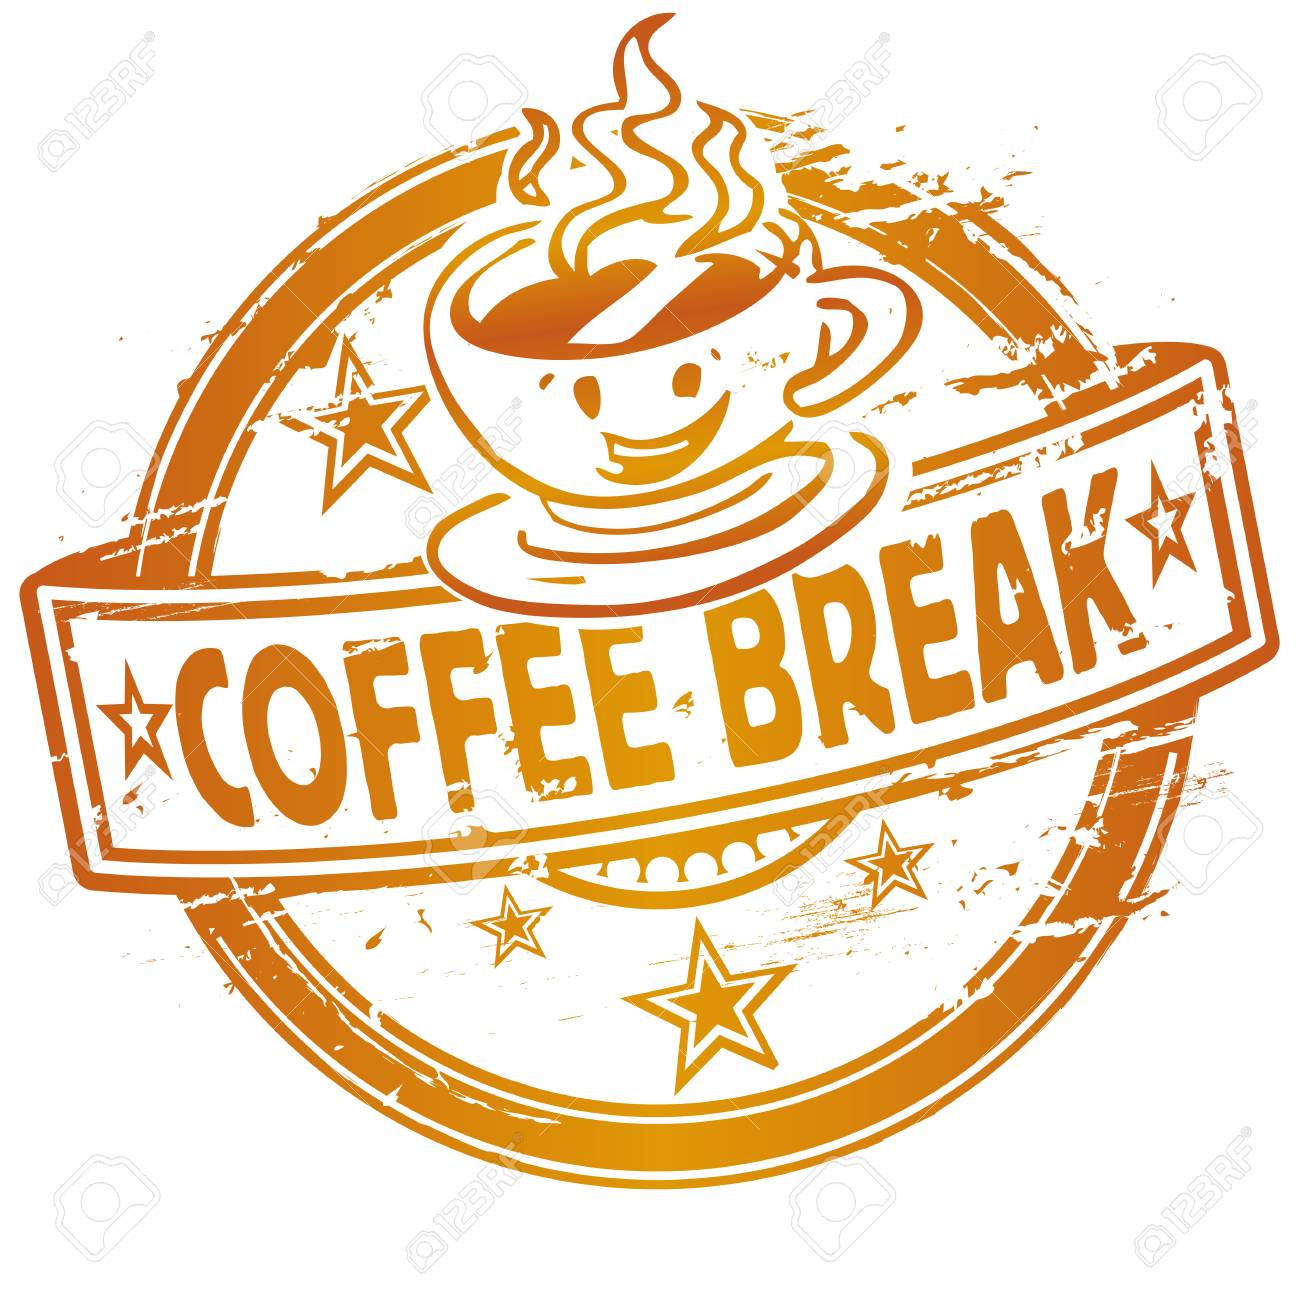 Rubber stamp with a coffee break - 124755290